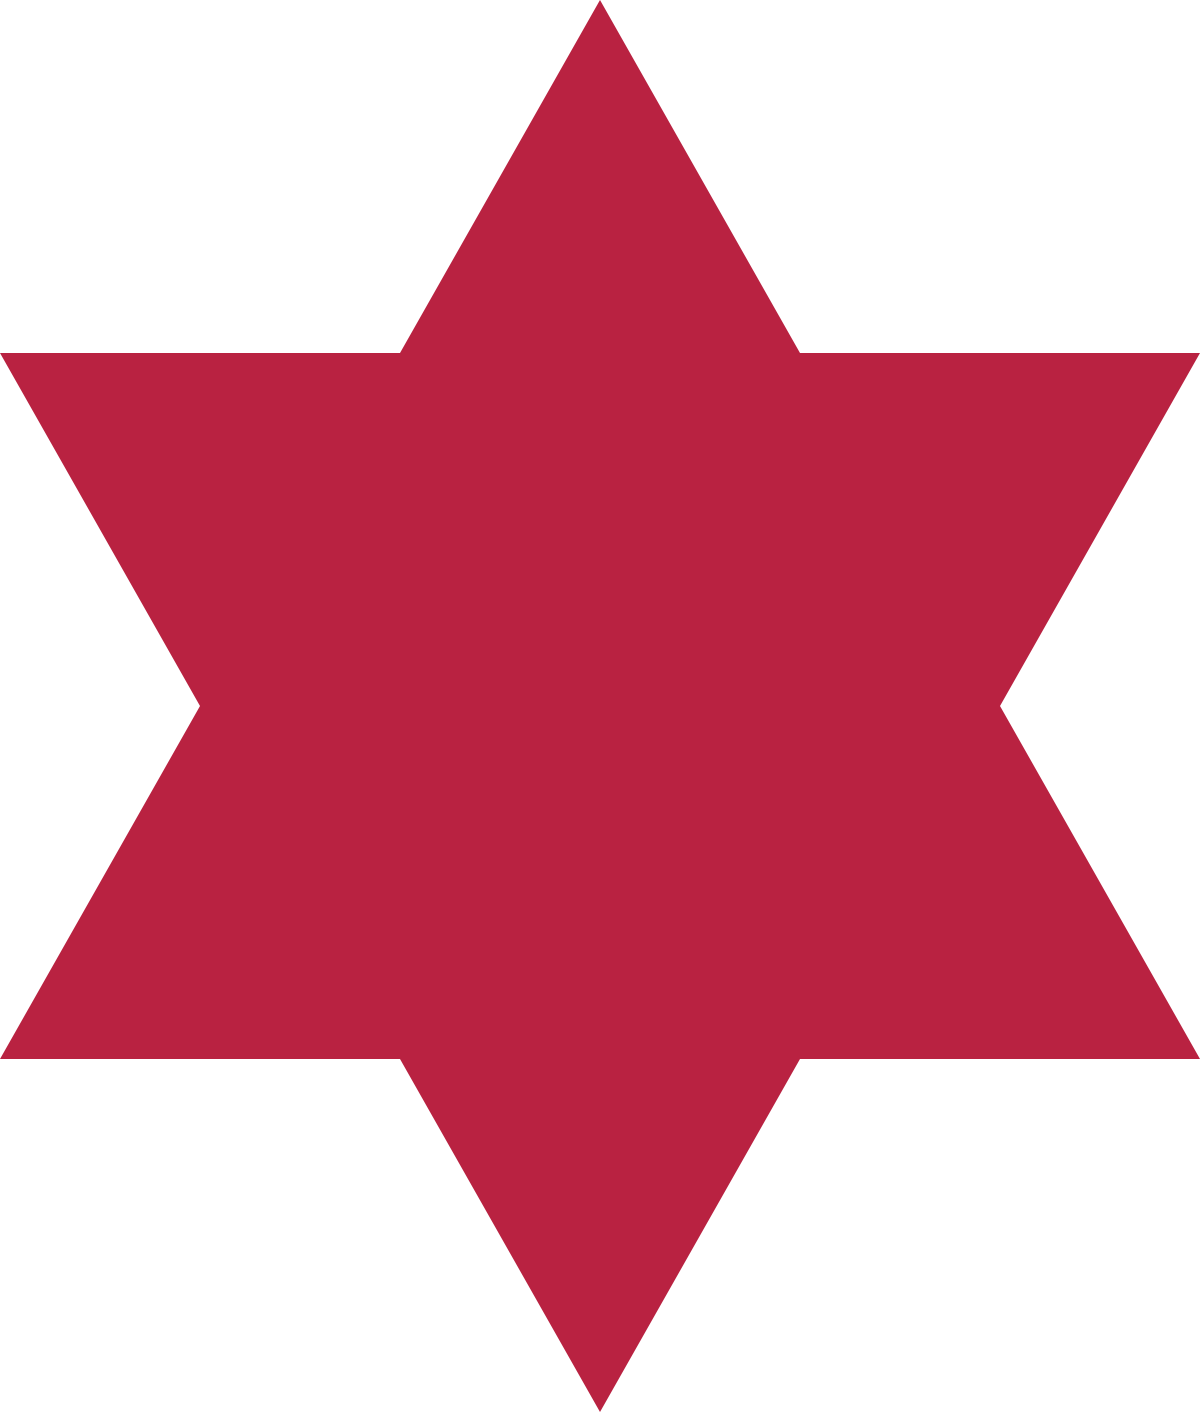 Northern star clipart picture library stock 6th Infantry Division (United States) - Wikipedia picture library stock